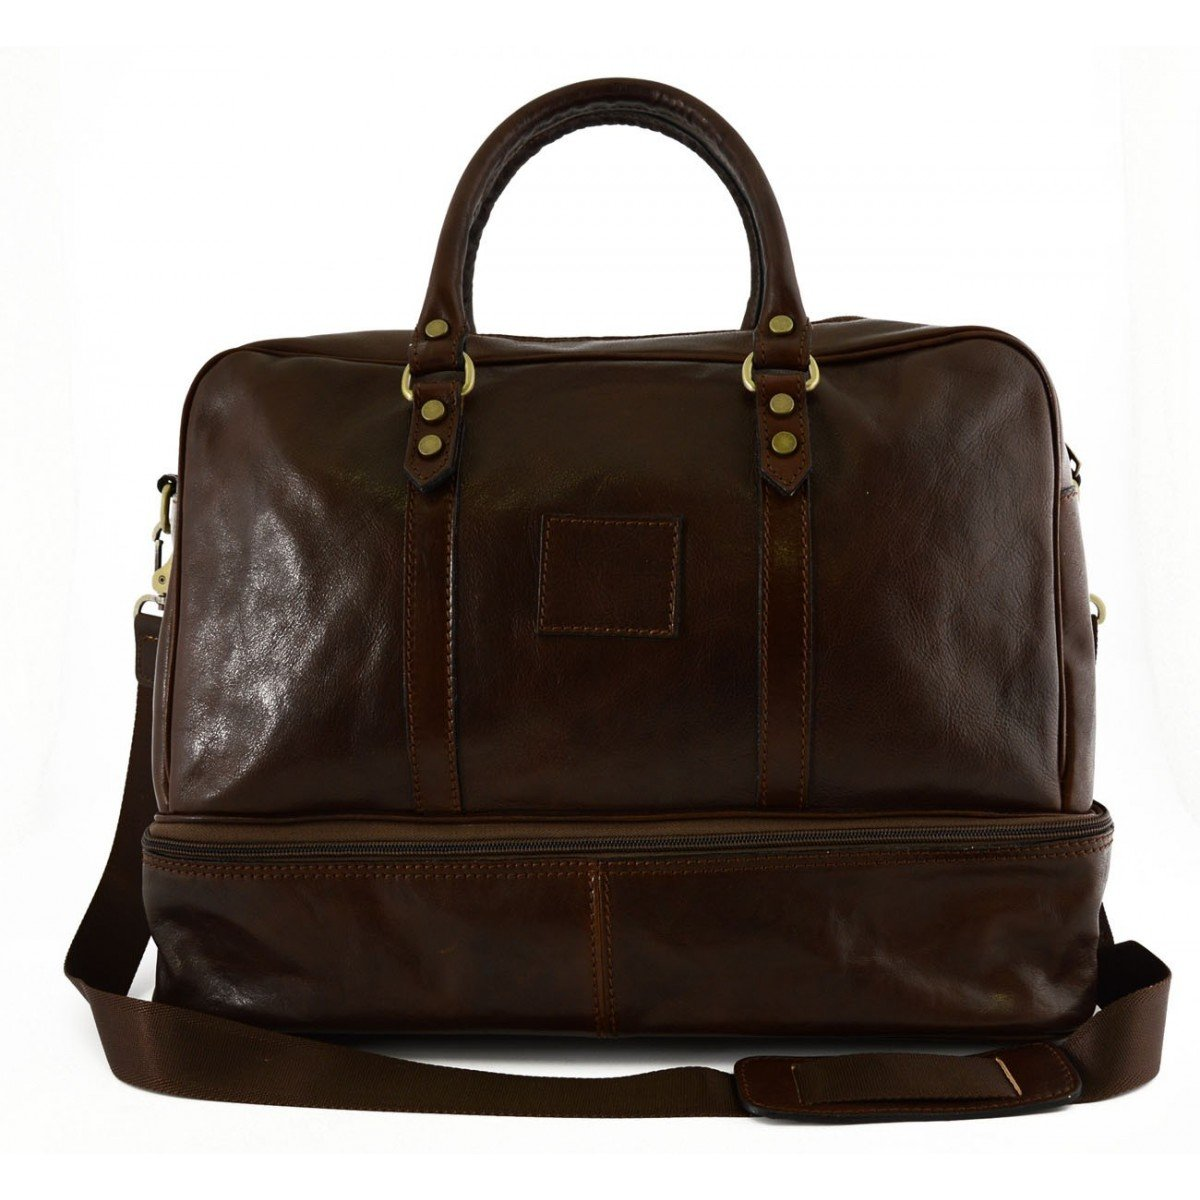 Made In Italy Leather Travel Bag Color Brown - Travel Bag B014T6HRYC